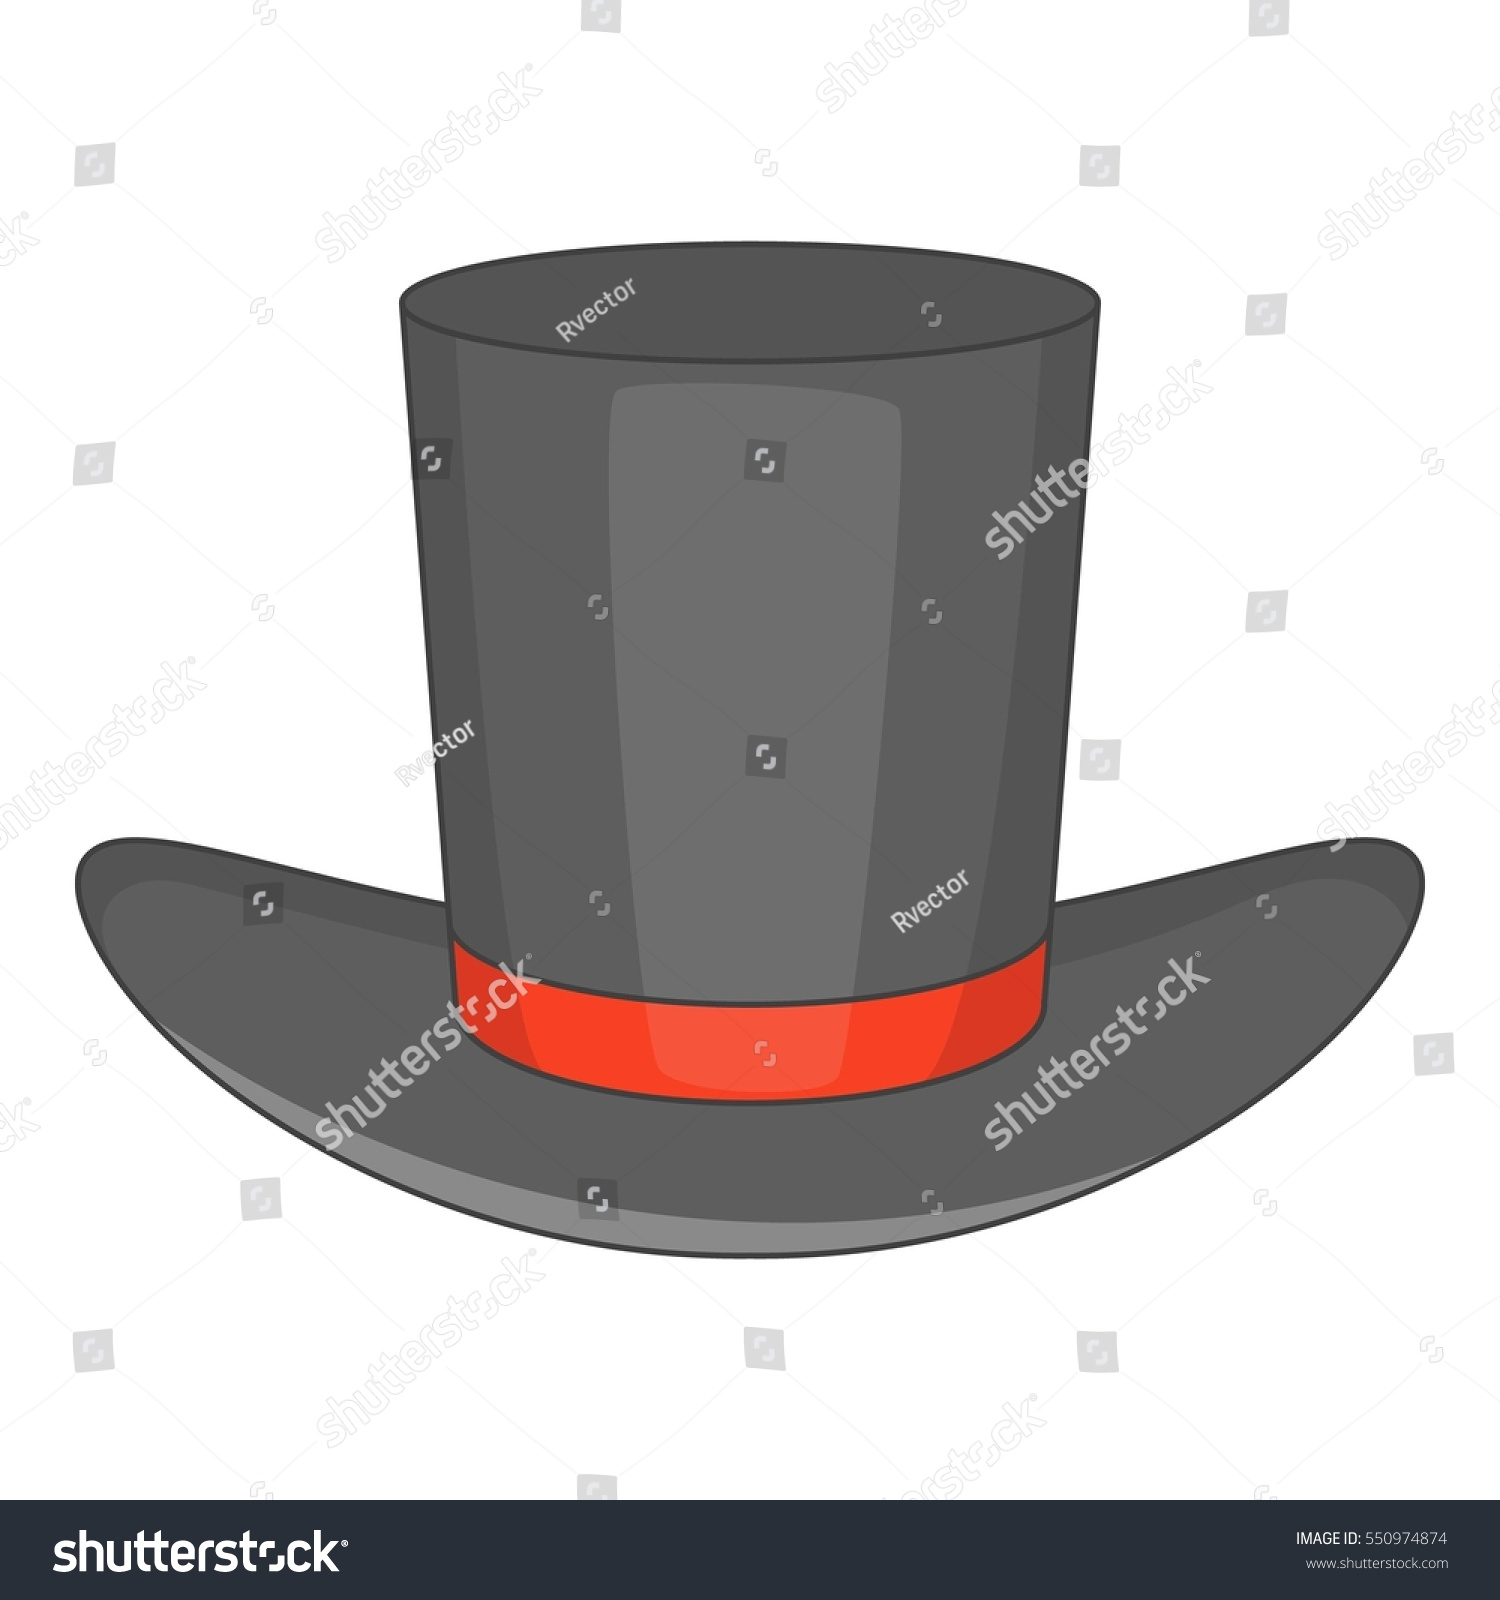 cartoon illustration gentleman hat vector icon stock vector 550974874 shutterstock. Black Bedroom Furniture Sets. Home Design Ideas